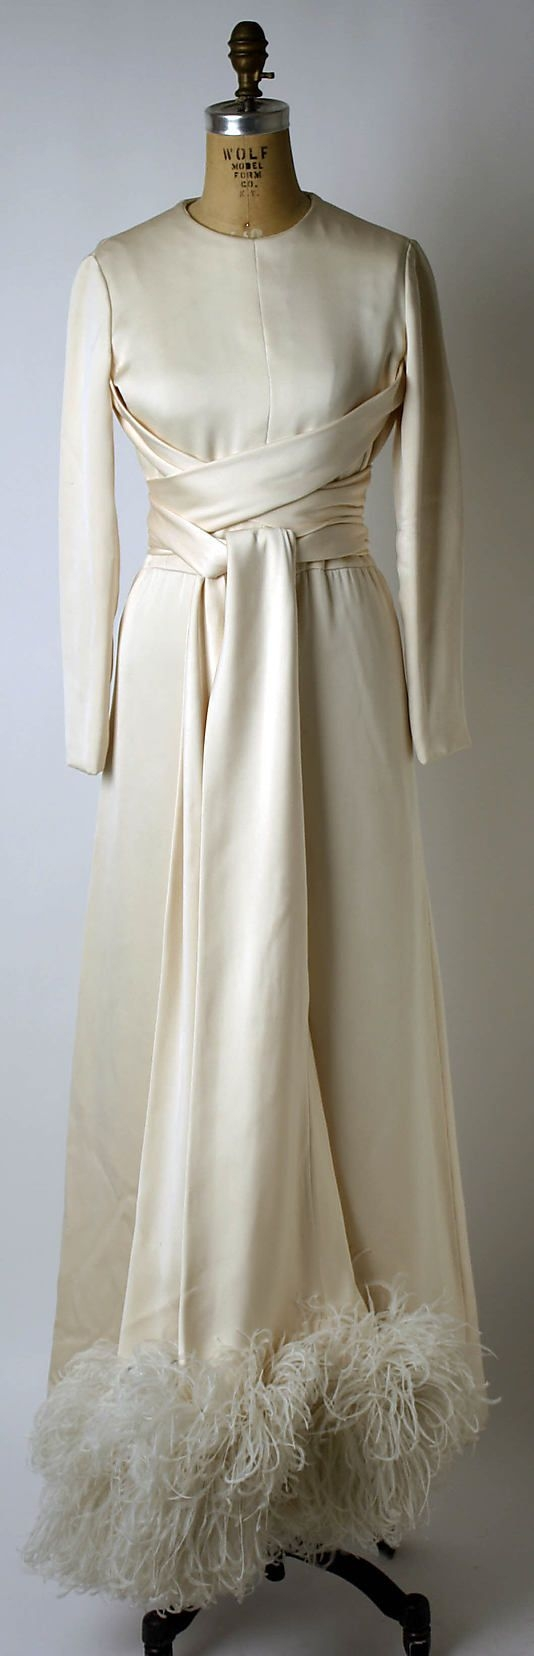 Valentino Dress - late 1960's by jennie | Vintage clothing ...